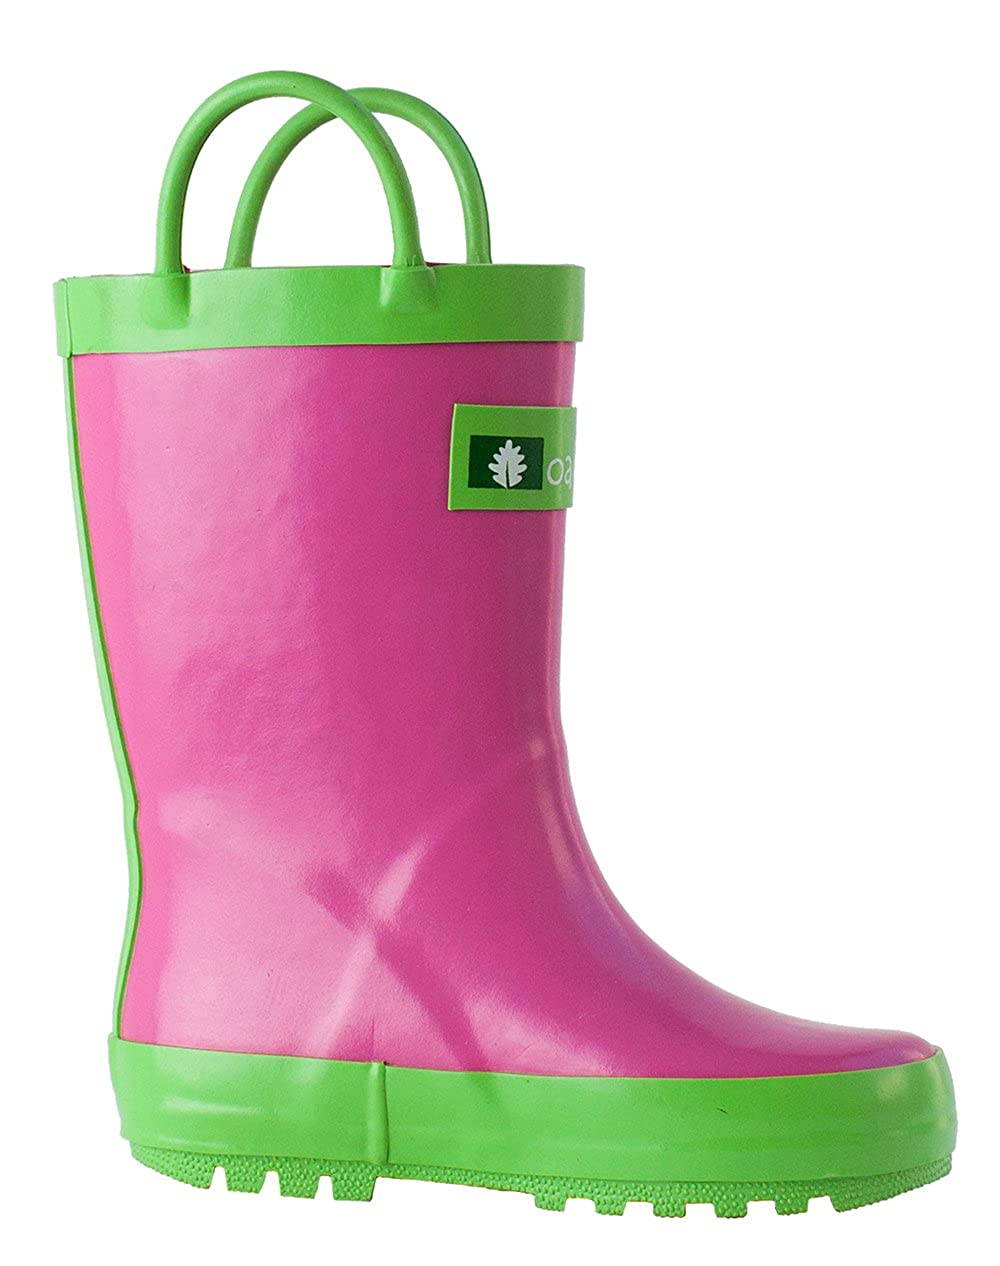 OAKI Kids Rubber Rain Boots with Easy-on Handles